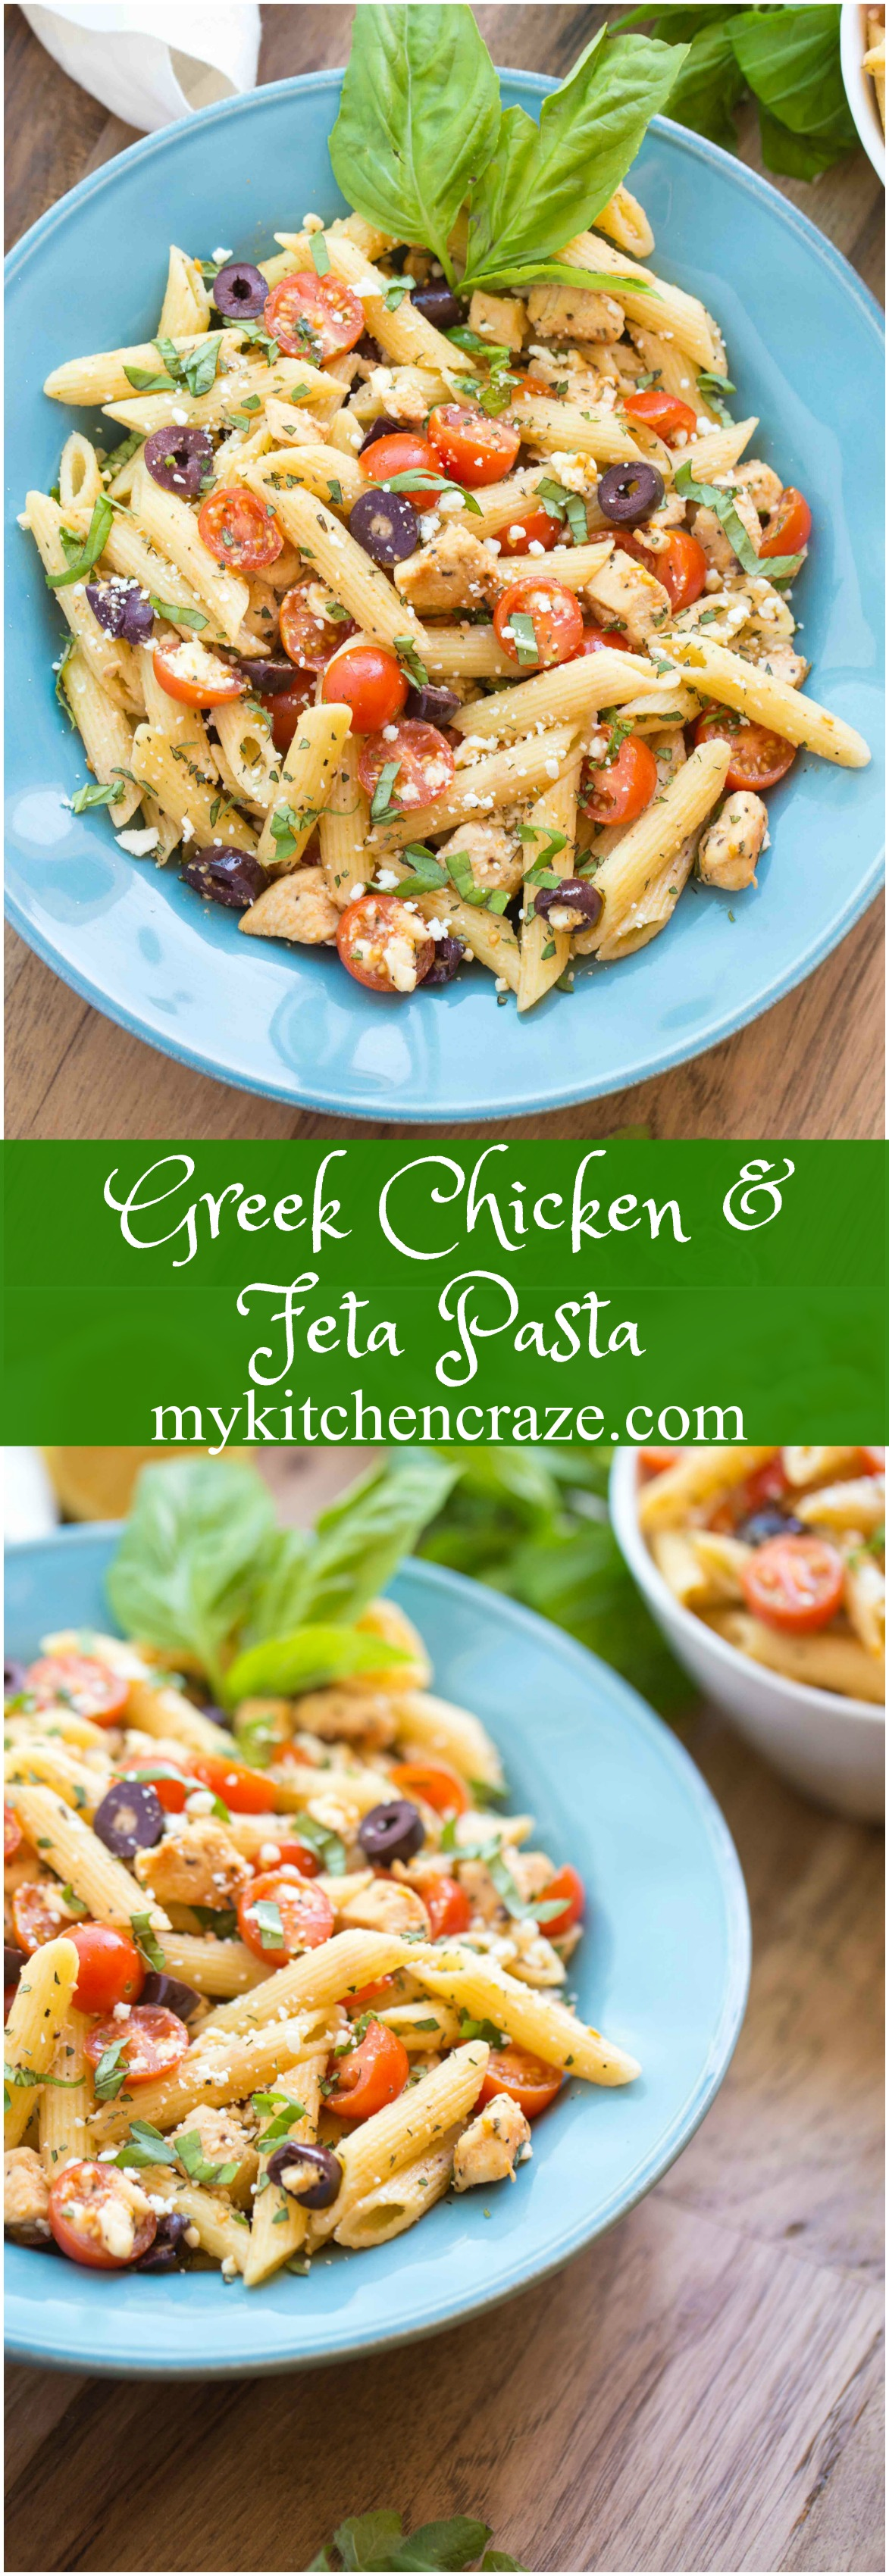 Greek Chicken & Feta Pasta is the perfect easy meal for those busy nights. This recipe is a no fuss recipe that everyone will love.